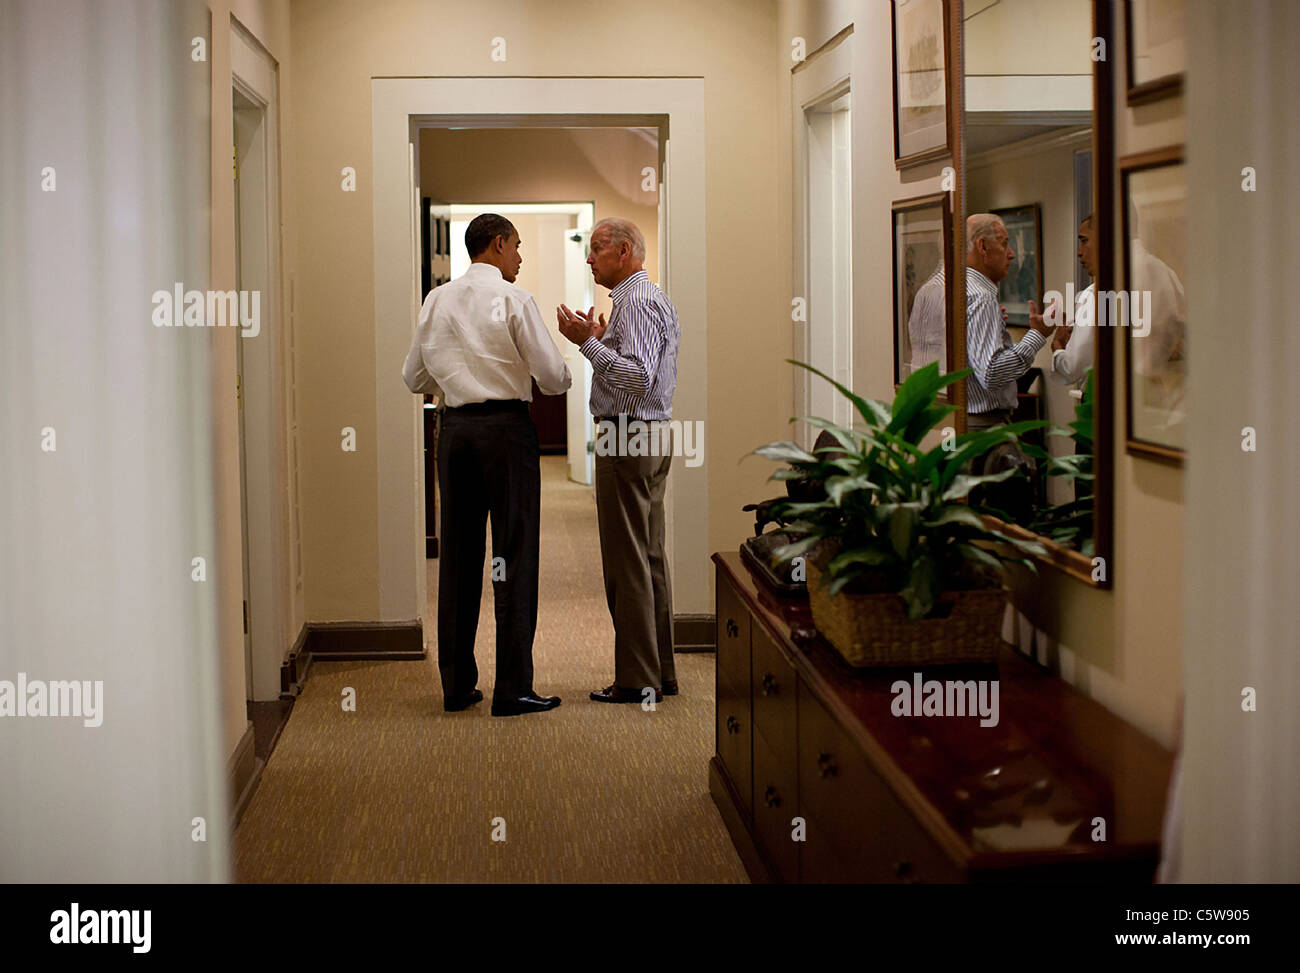 President Barack Obama and Vice President Joe Biden talk in a West Wing hallway at the White House during the debt - Stock Image